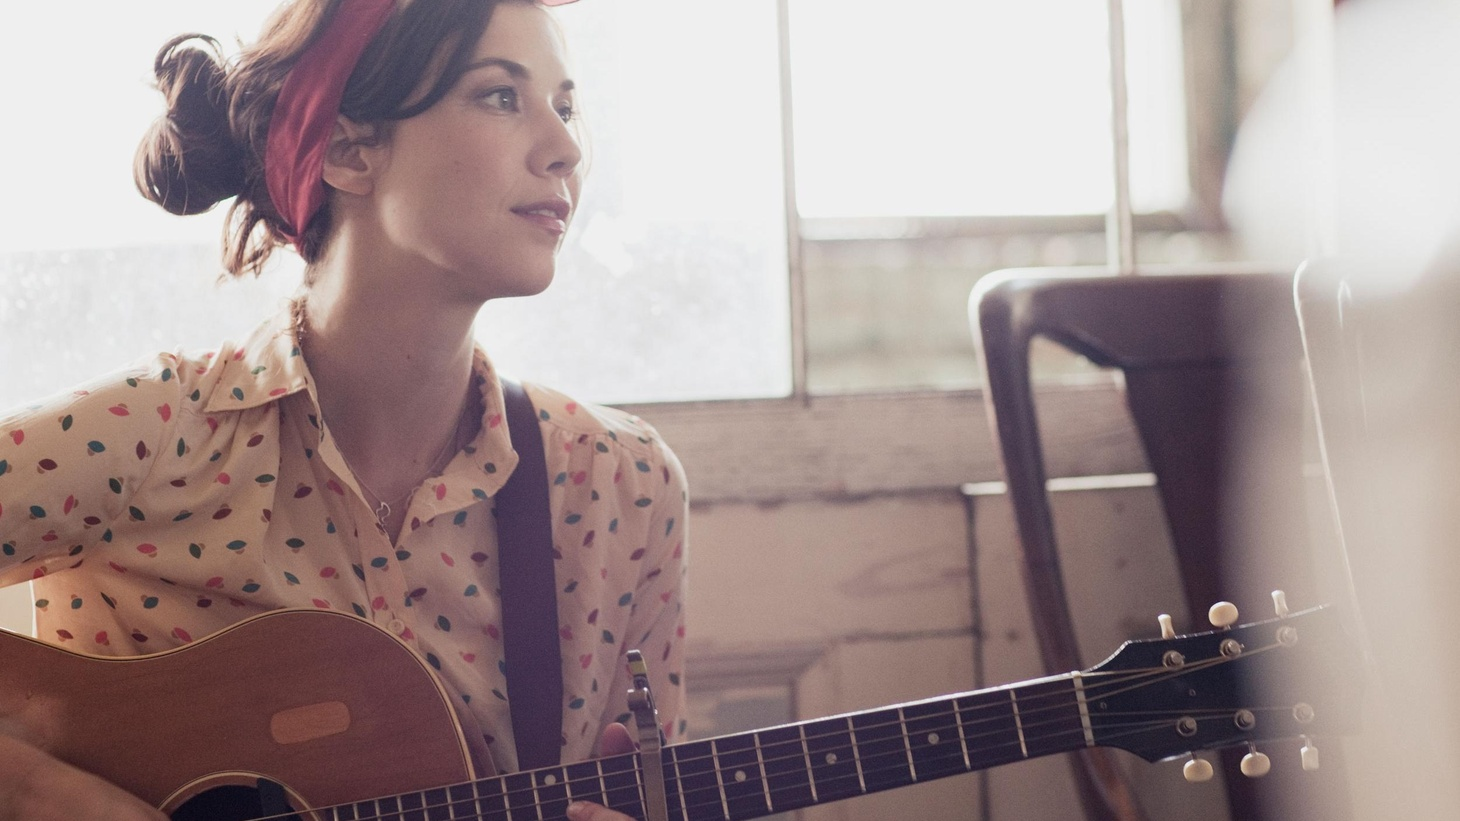 Lisa Hannigan first became known for her entrancing vocals while duetting with Damien Rice. Her solo debut was embraced by critics and her sophomore release...